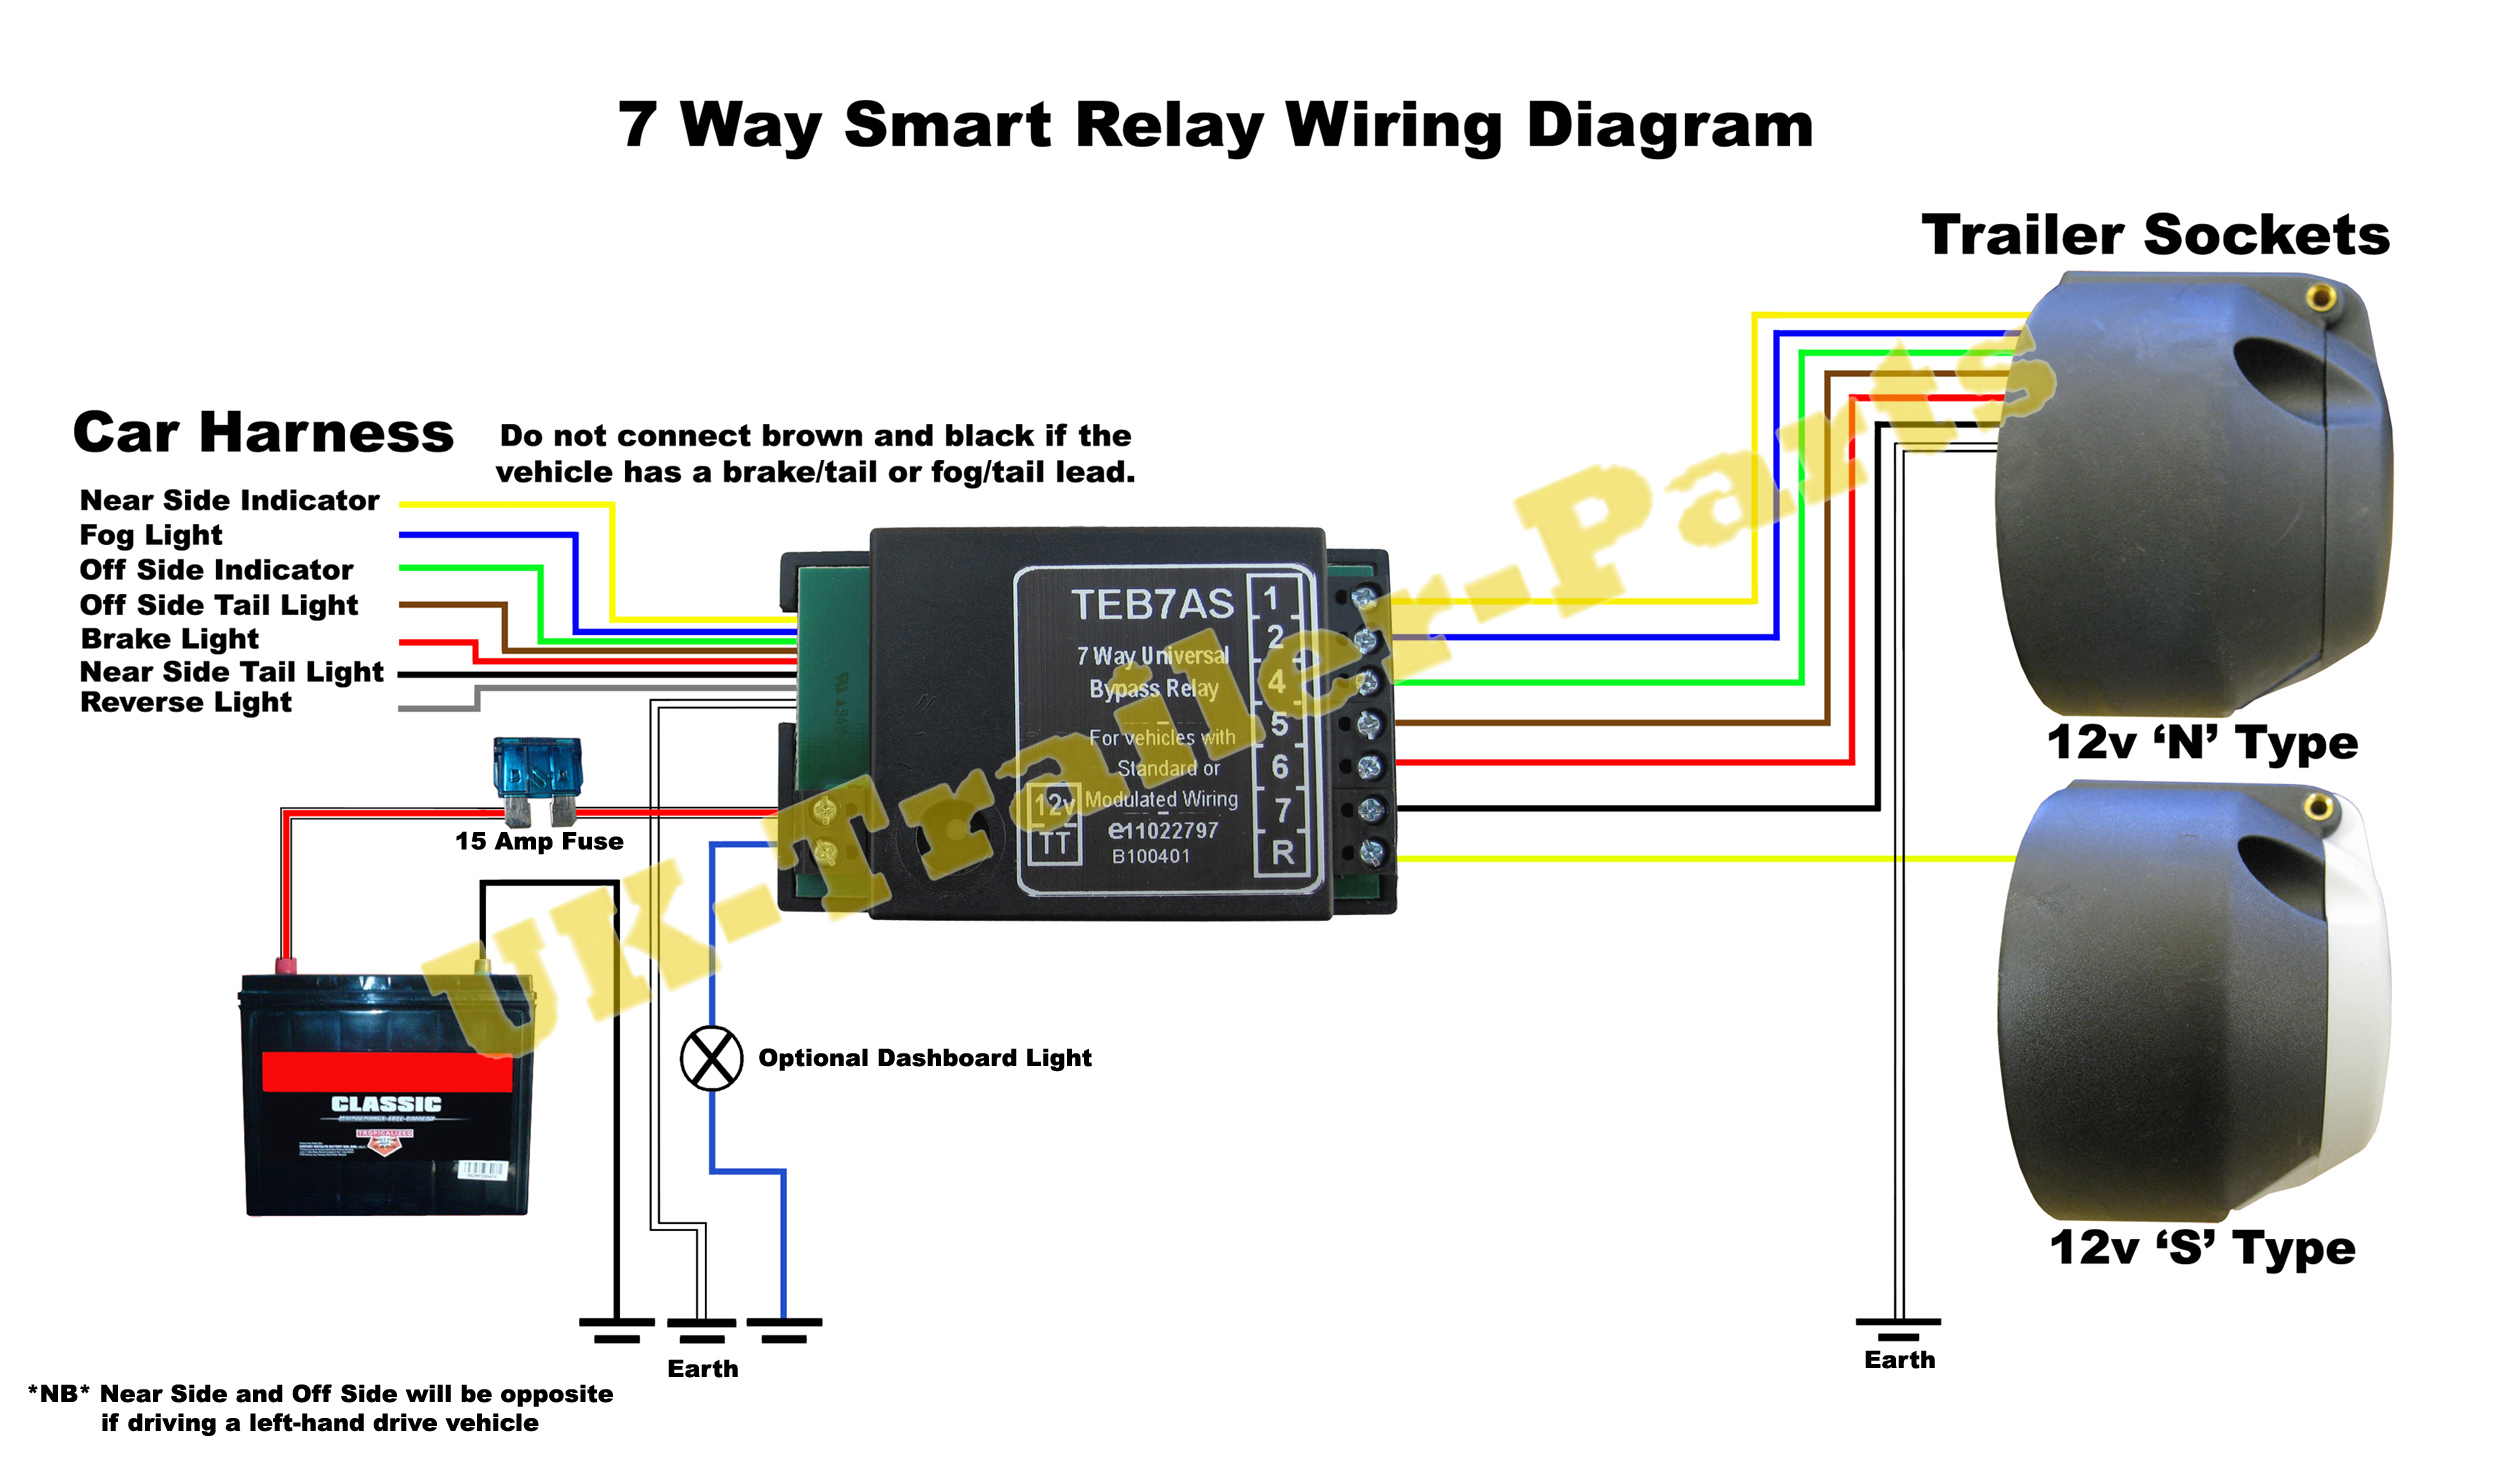 smart relay wiring diagram2 7 way universal bypass relay wiring diagram uk trailer parts 7 wire diagram at gsmx.co